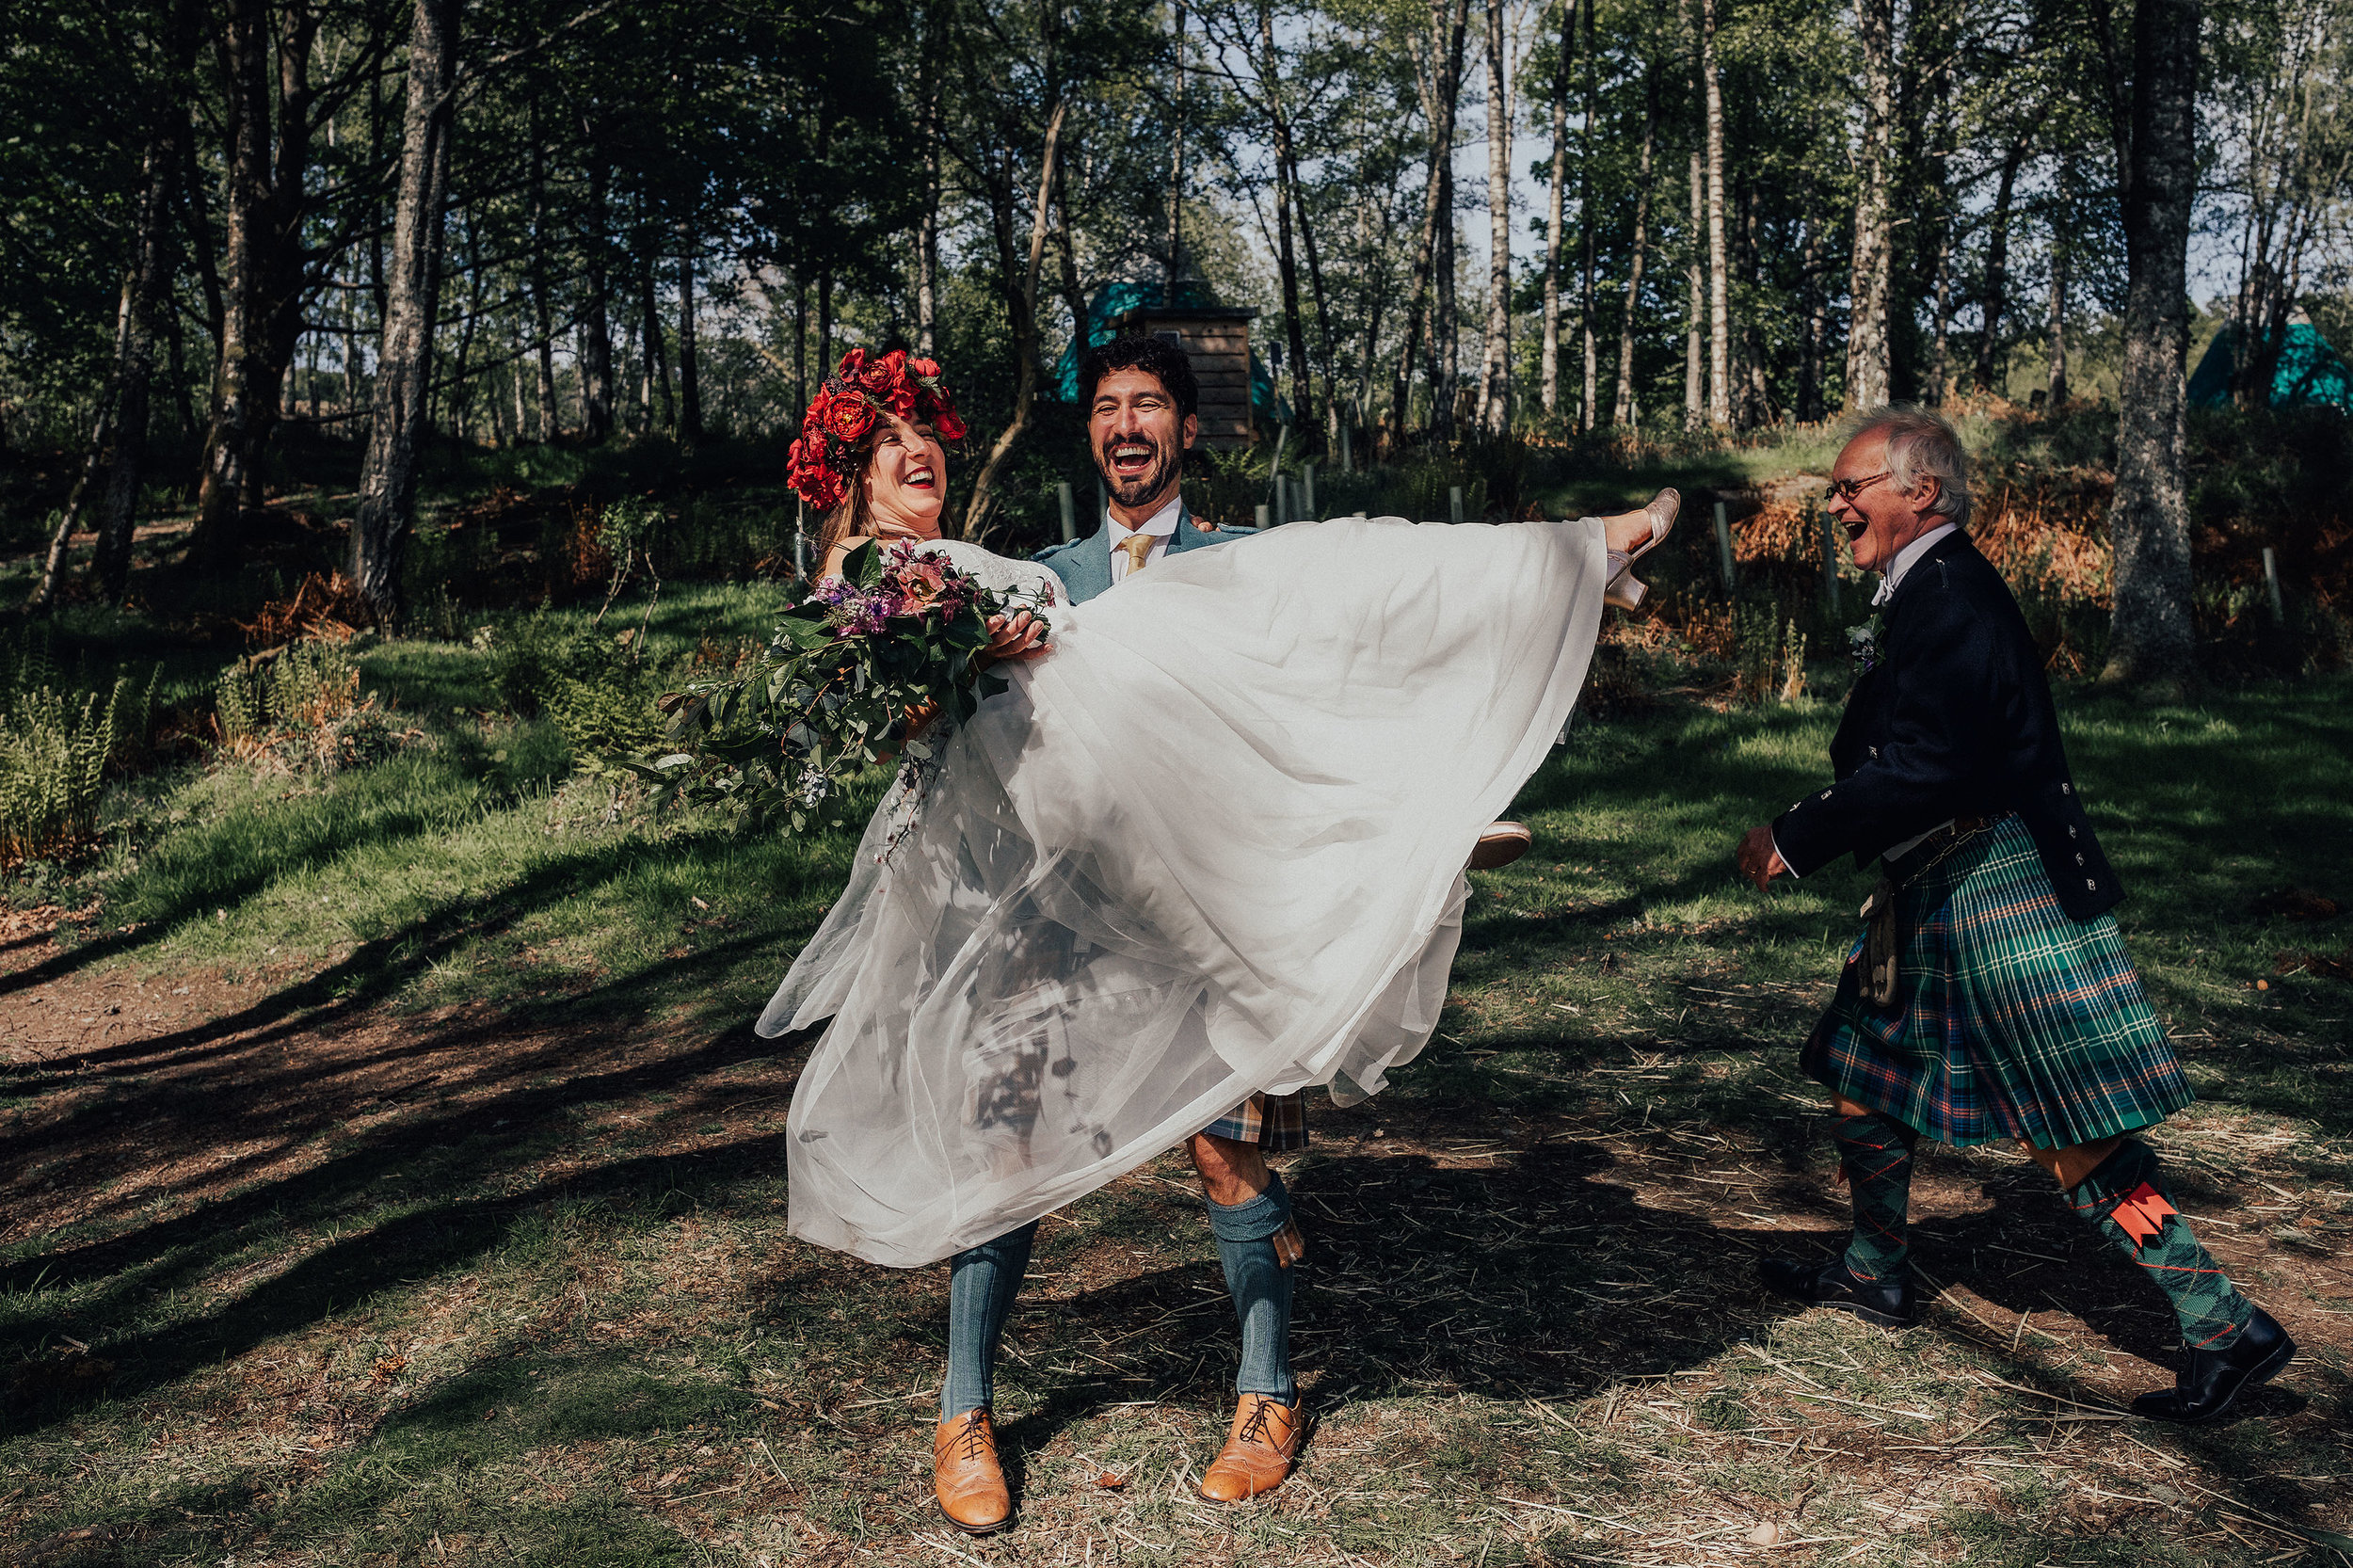 COMRIE_CROFT_WEDDINGS_PJ_PHILLIPS_PHOTOGRAPHY_98.jpg